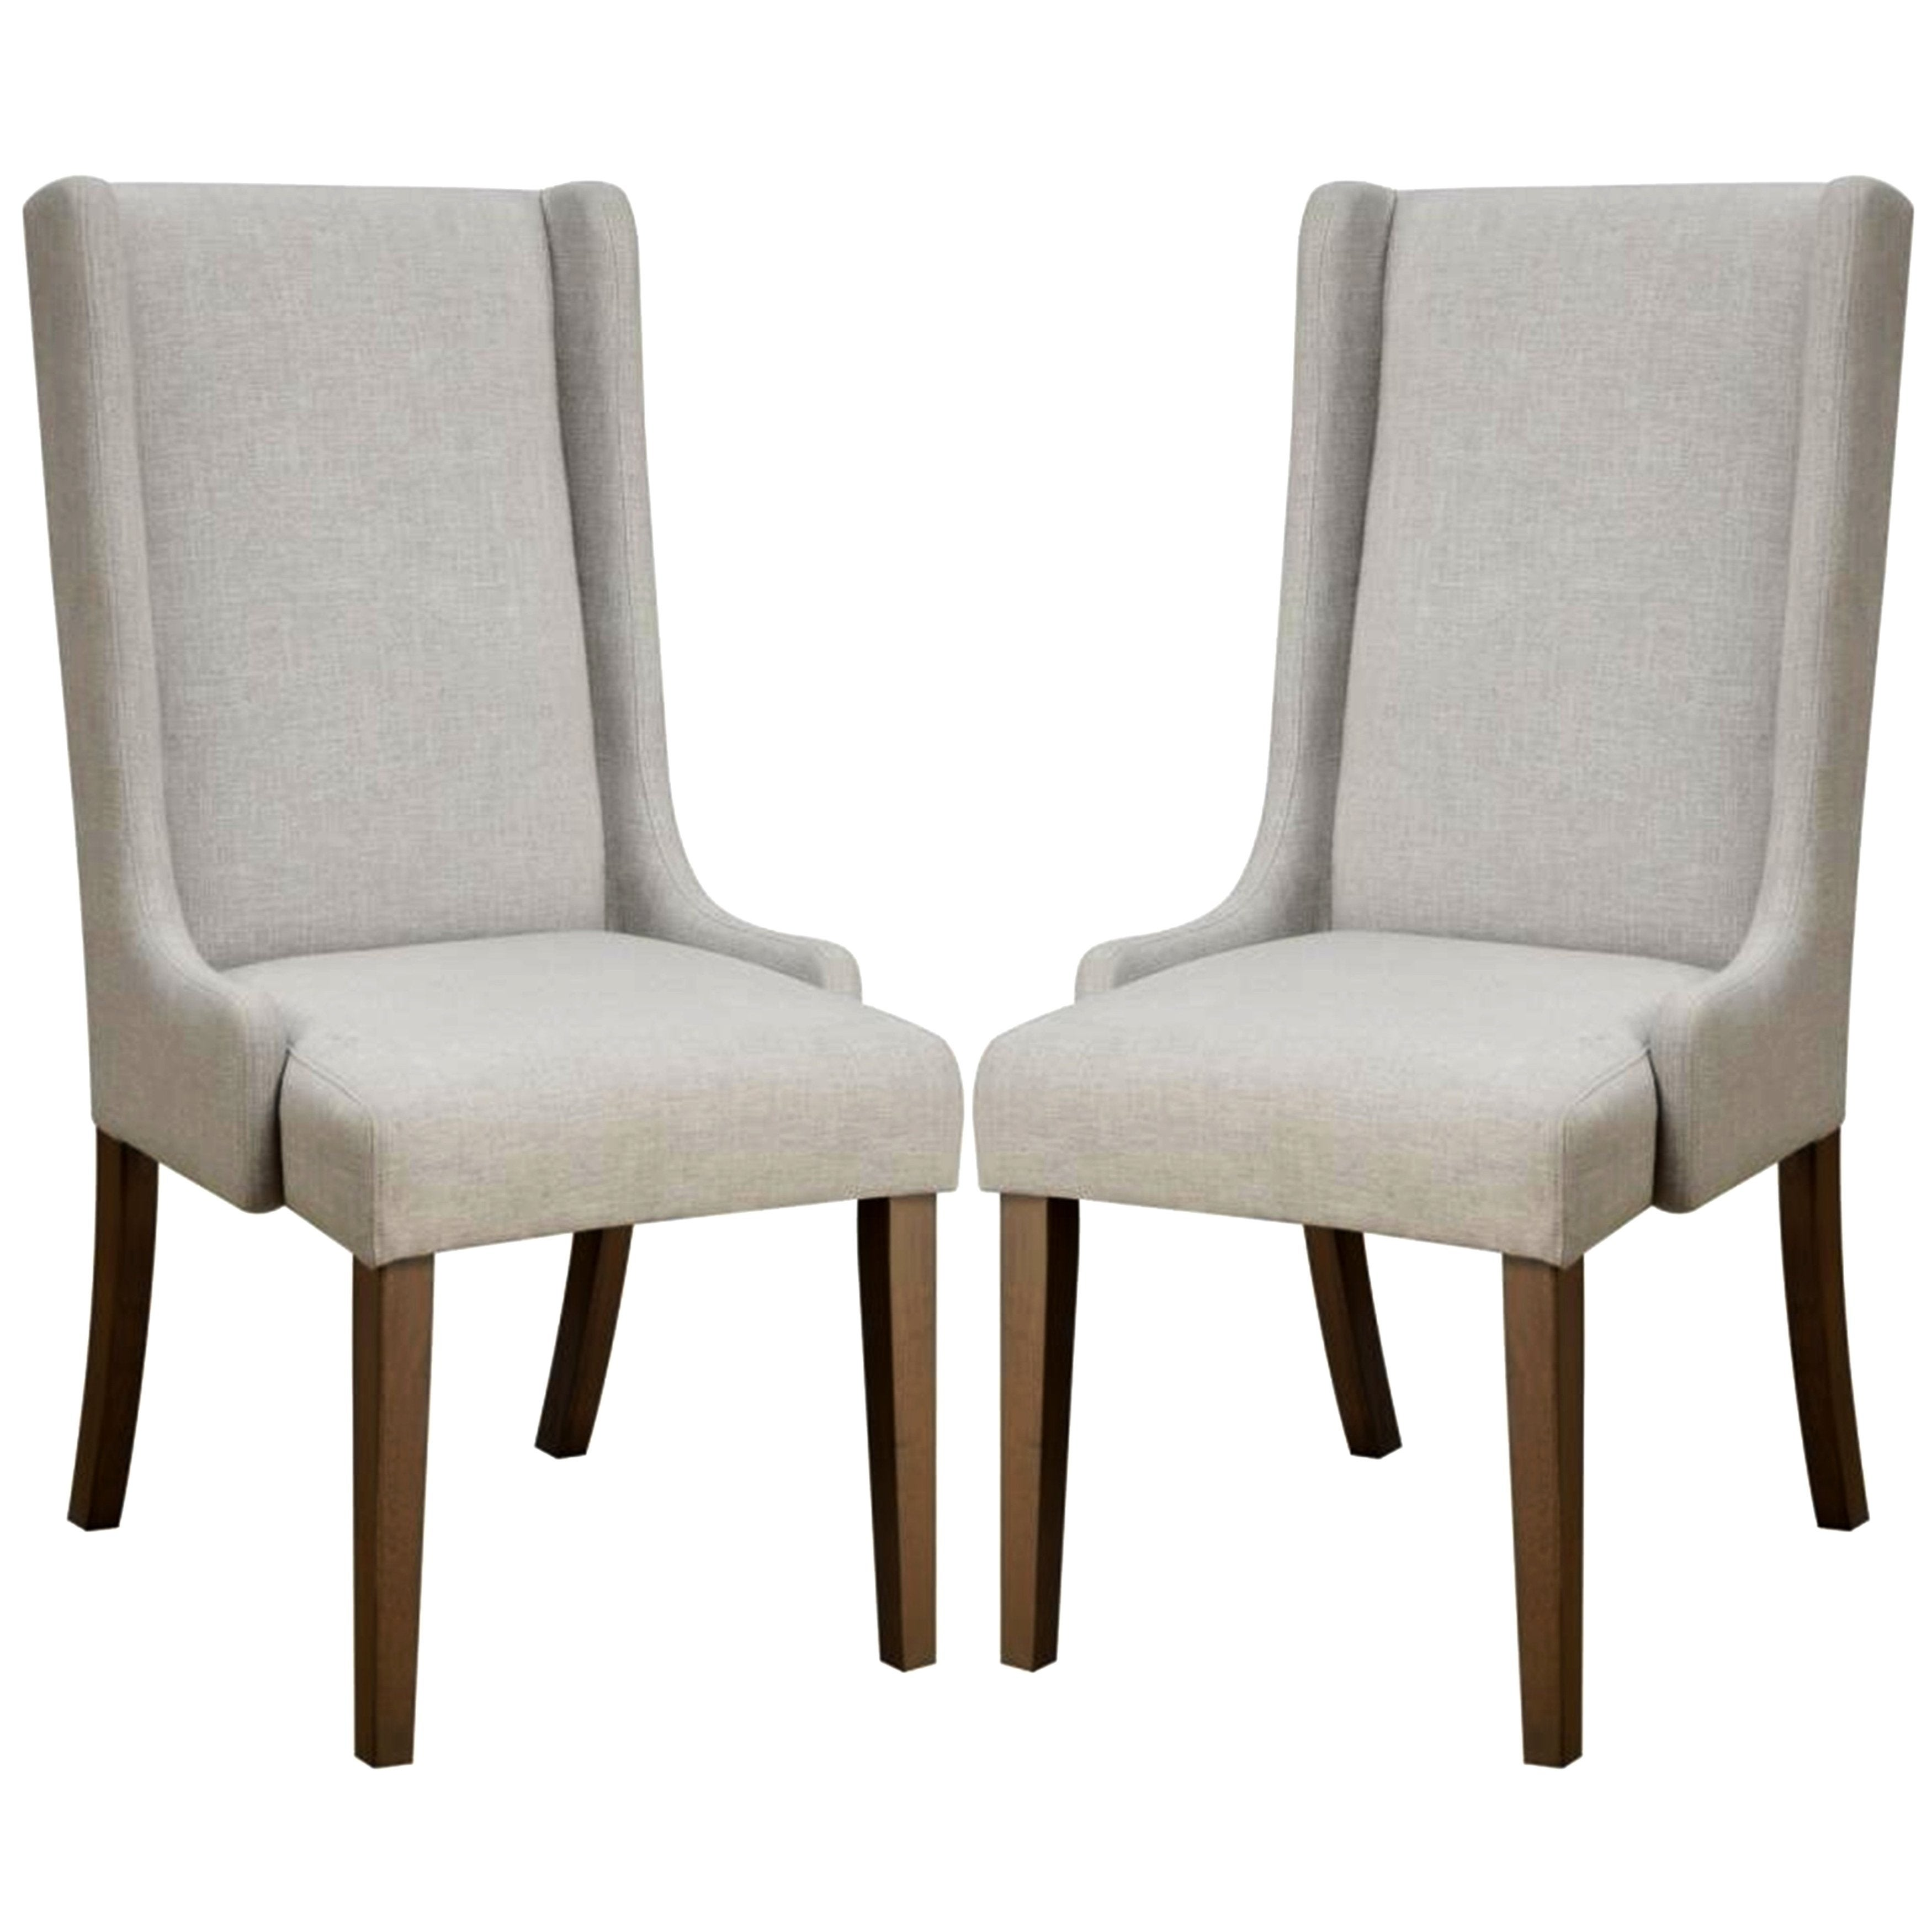 Surprising Mid Century Design Wing Back Dining Chairs Set Of 2 Pabps2019 Chair Design Images Pabps2019Com